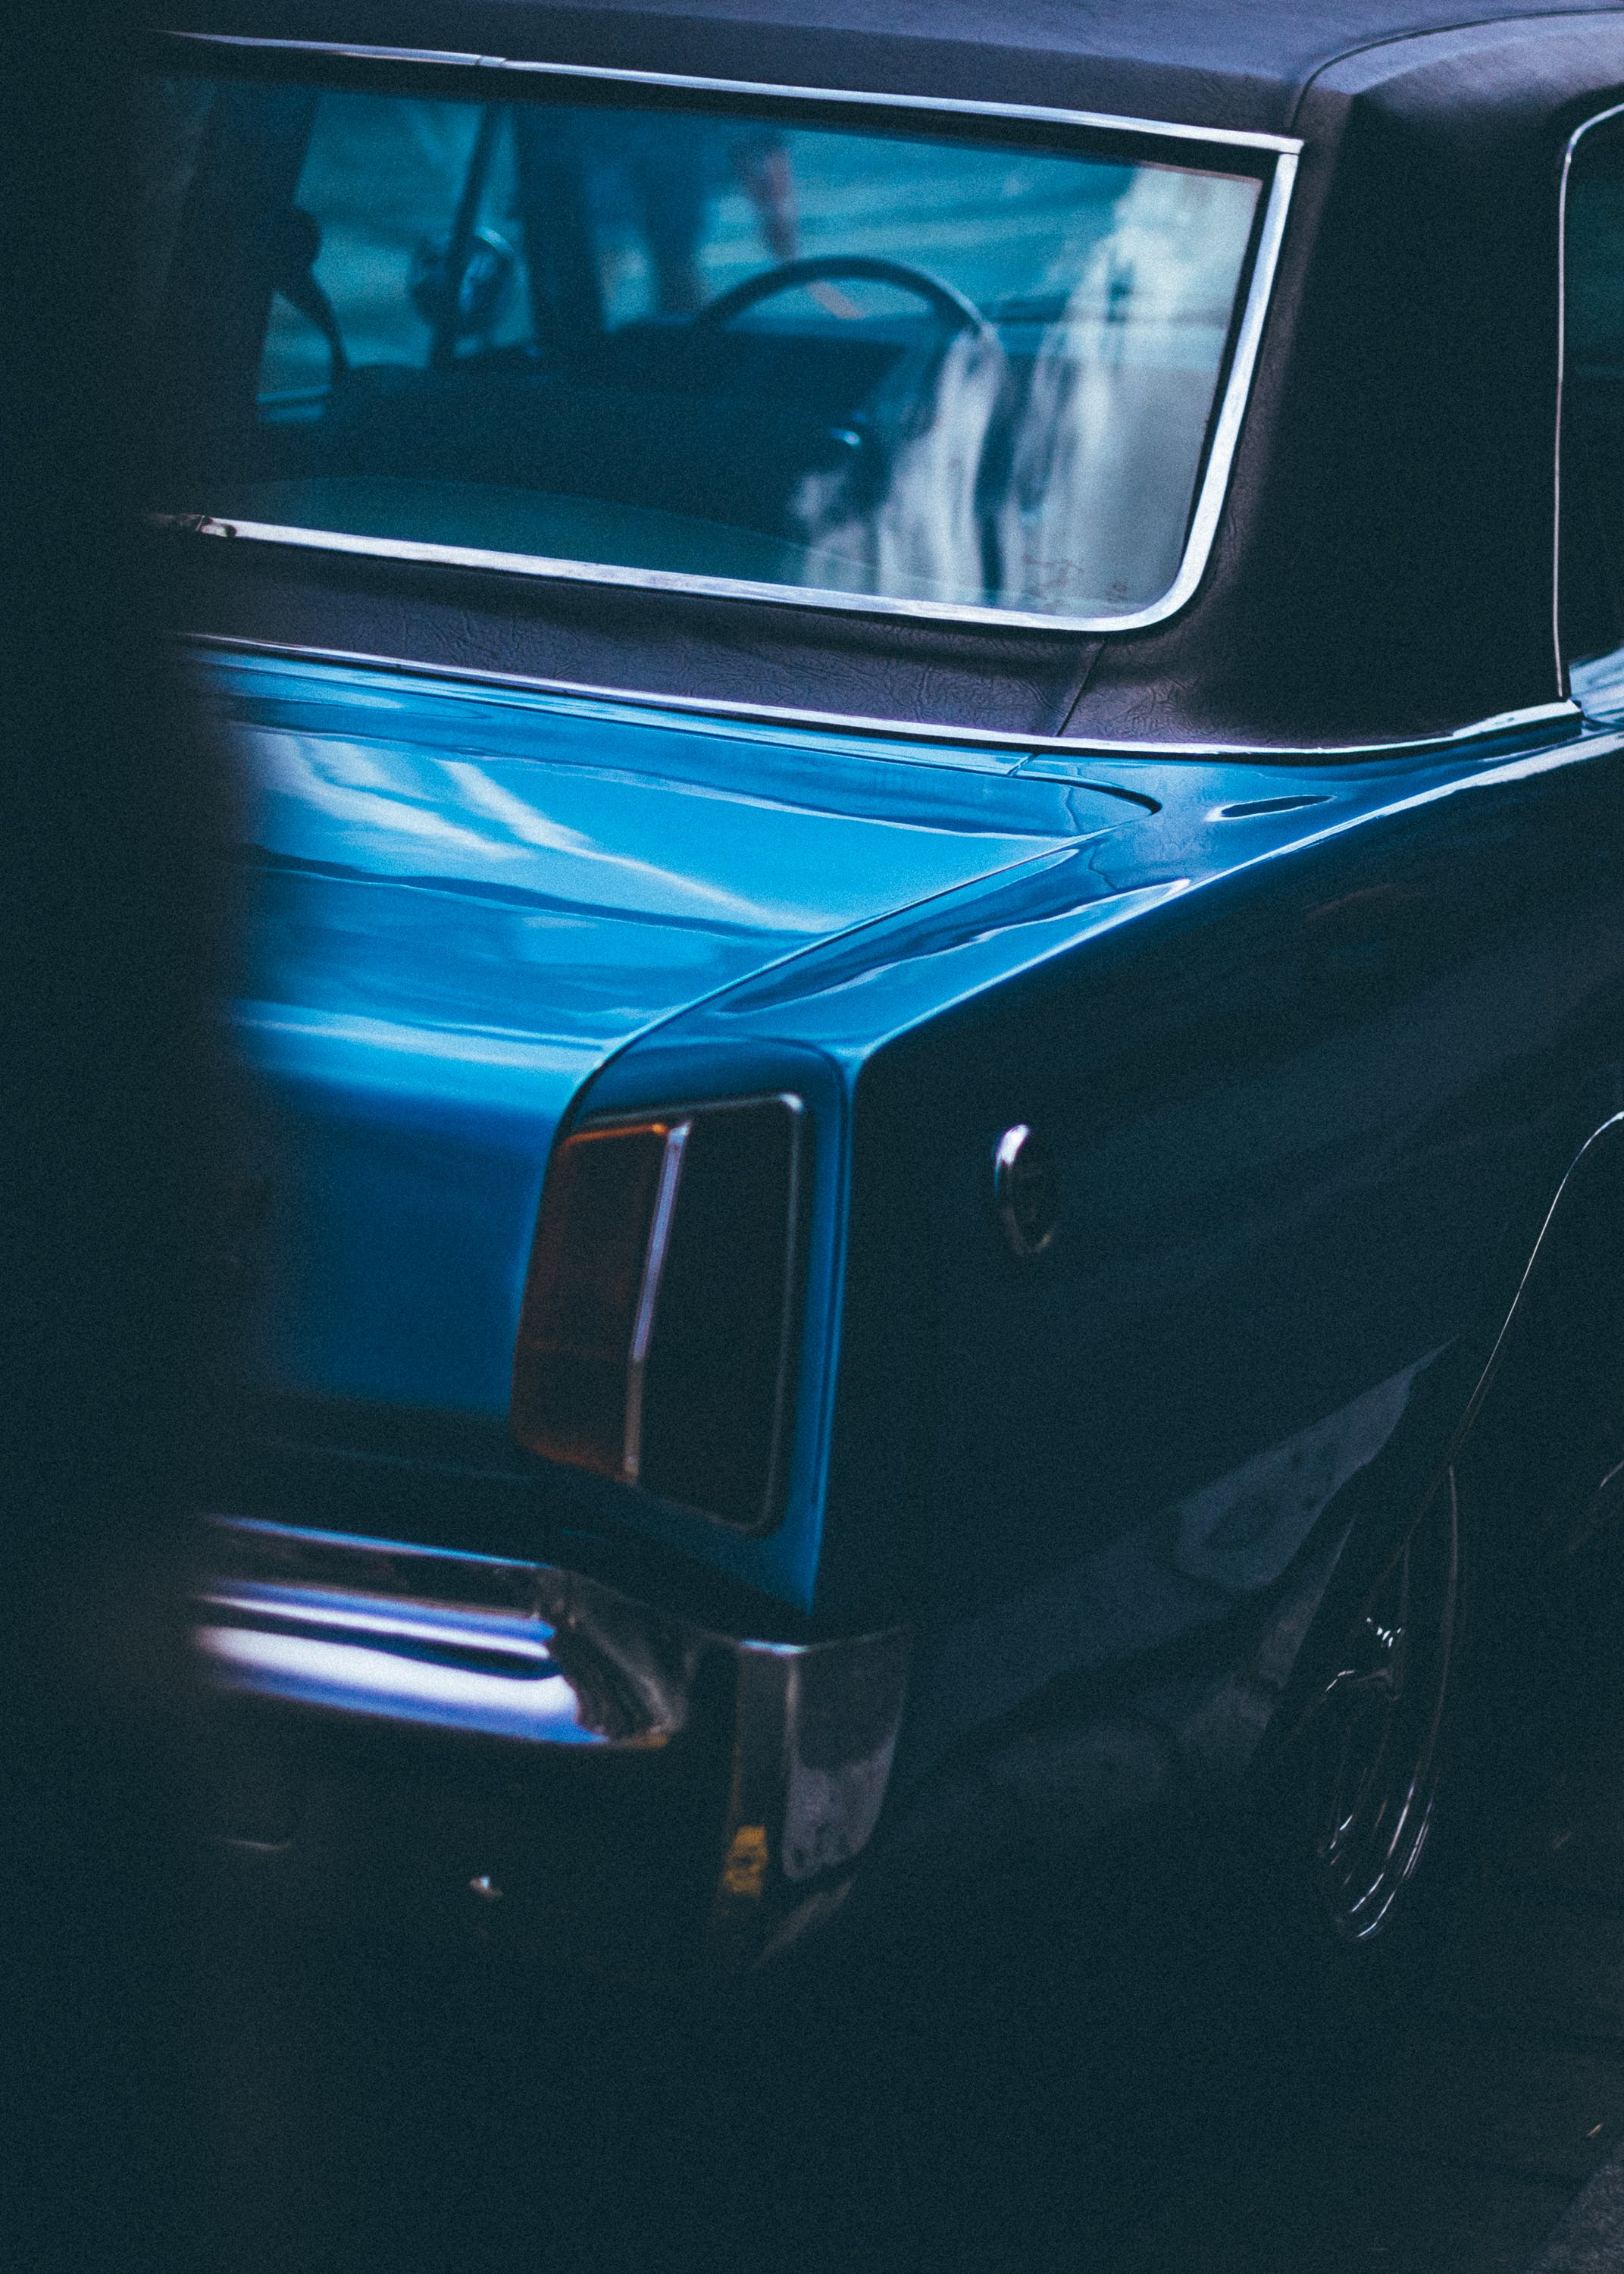 Classic Blue Vehicle Parked